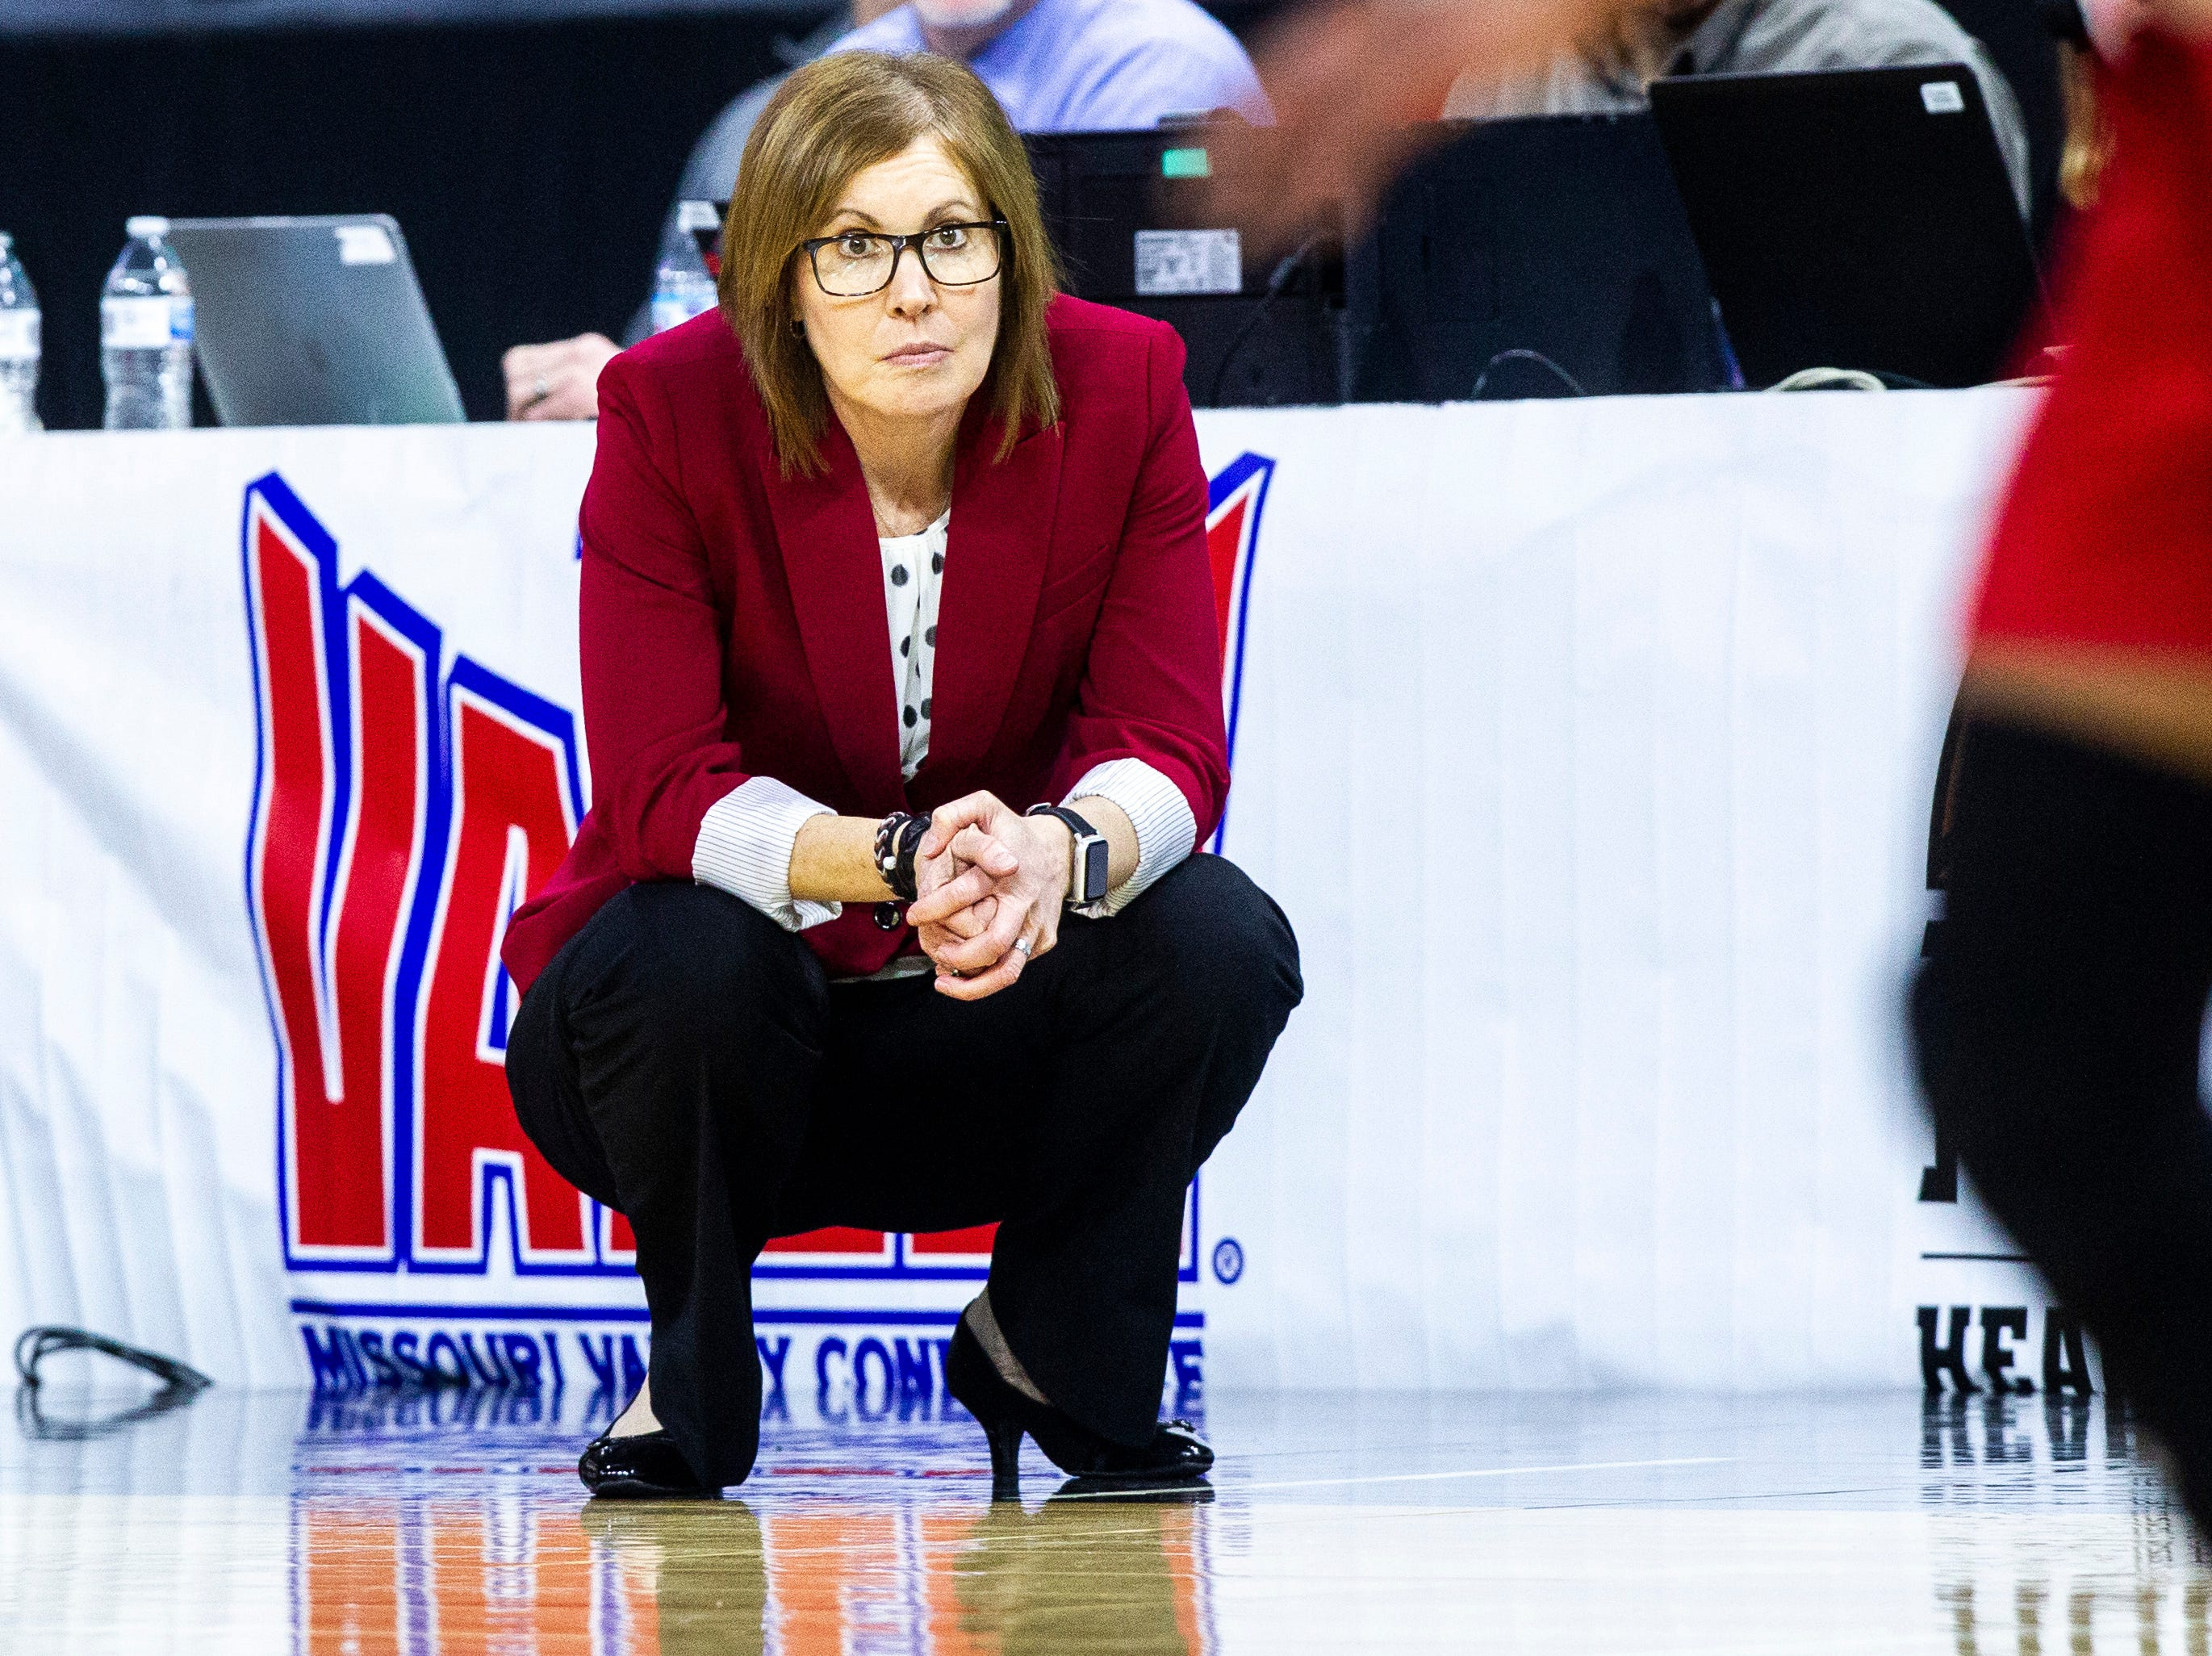 Bradley head coach Andrea Gorski watches play from the baseline during a NCAA Missouri Valley Conference women's basketball quarterfinal tournament game, Friday, March 15, 2019, at the TaxSlayer Center in Moline, Illinois.